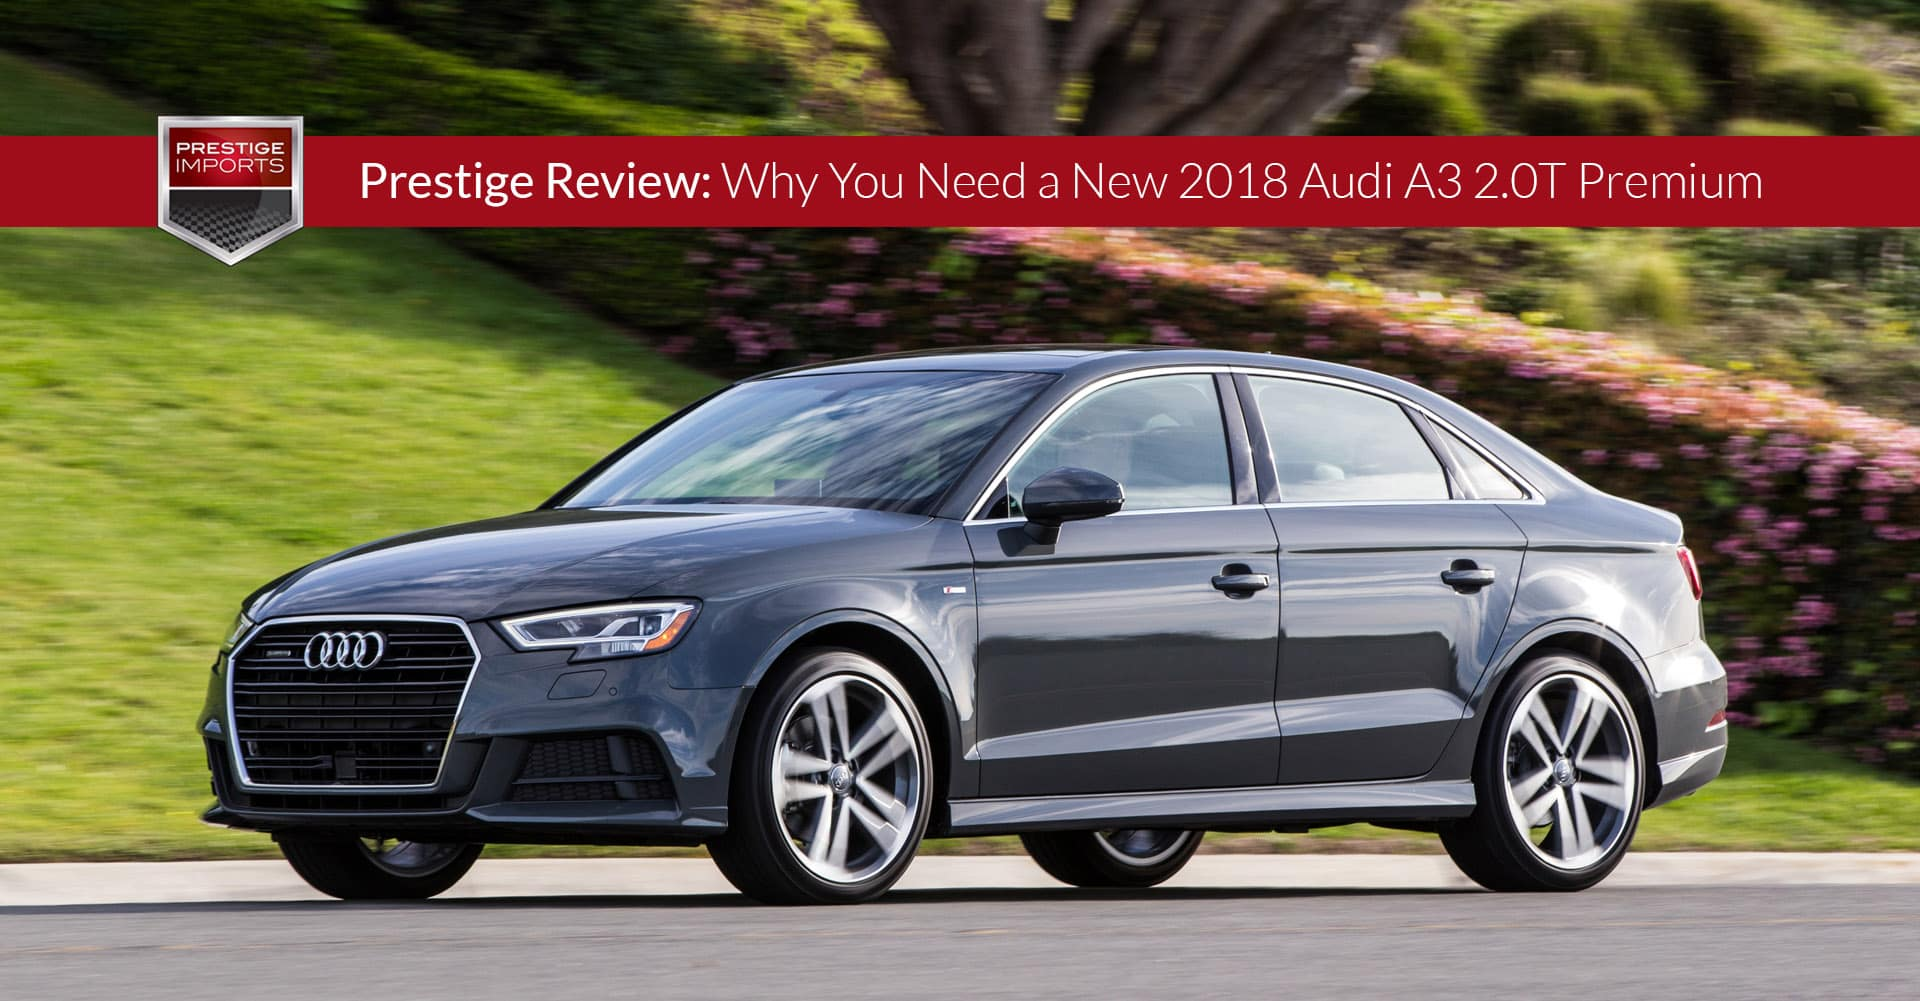 Prestige Review Why You Need A New 2018 Audi A3 20t Premium